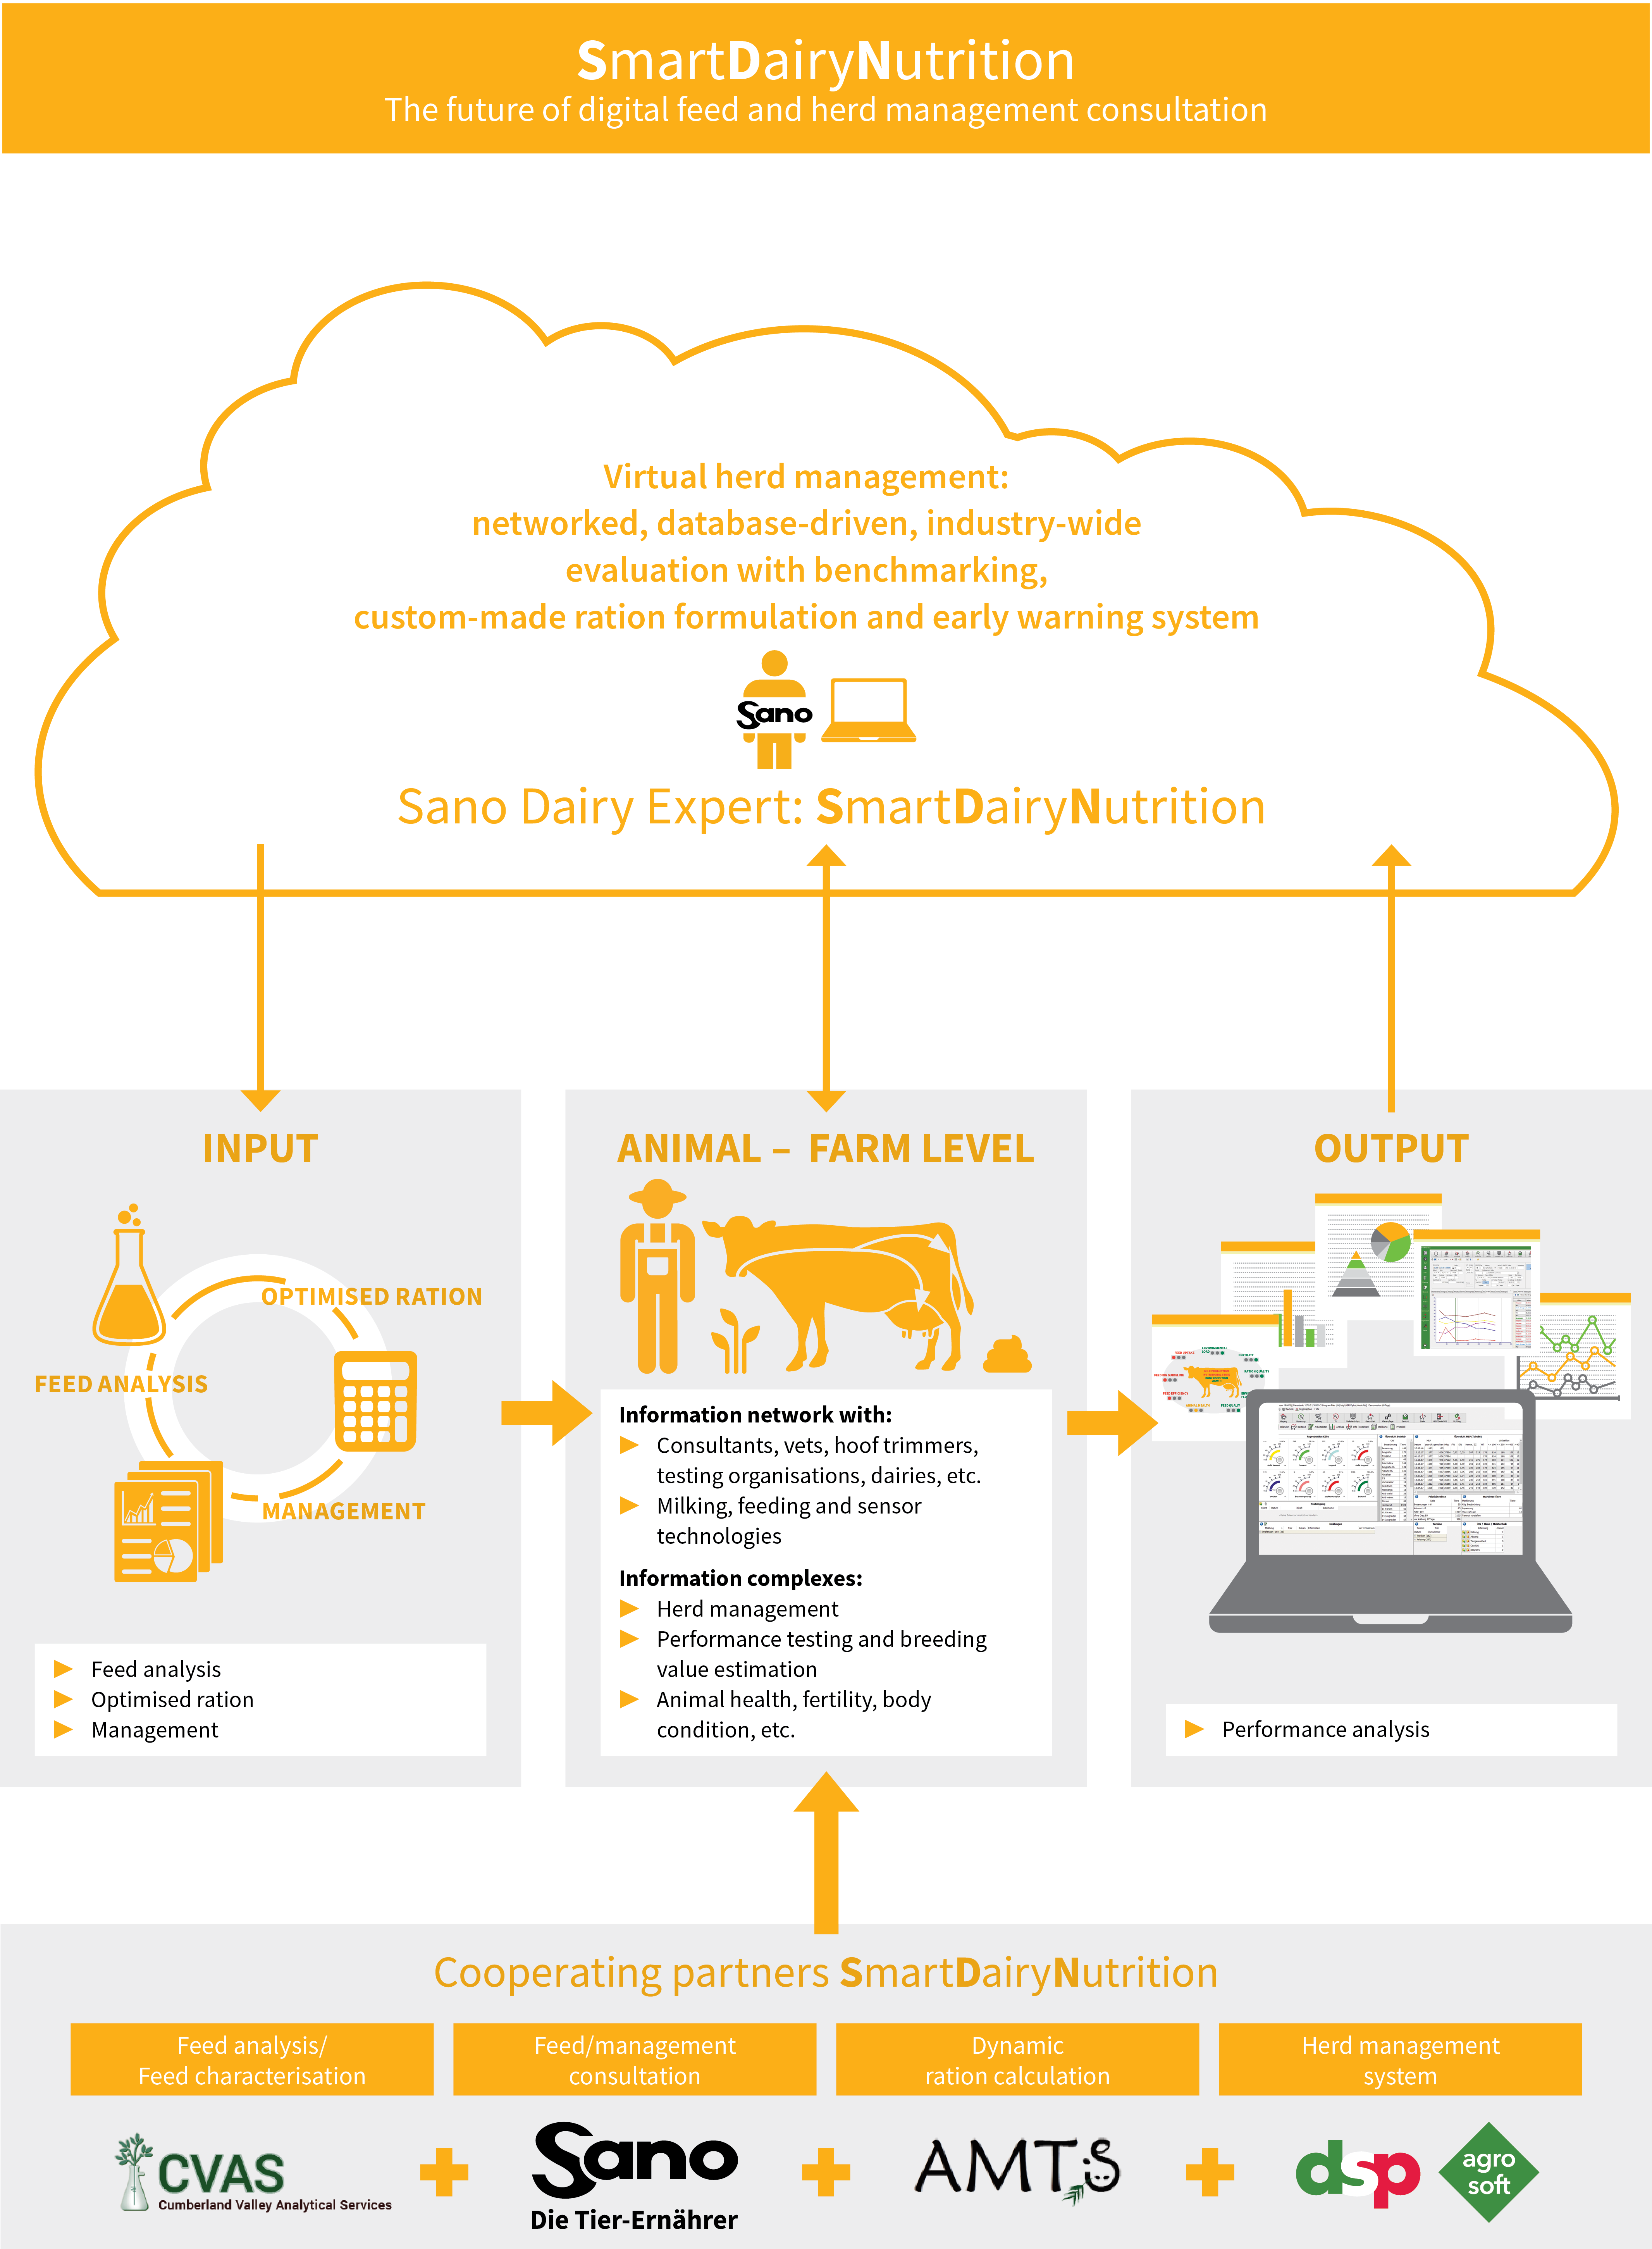 SmartDairyNutrition by Sano - Virtual herd management / software overview